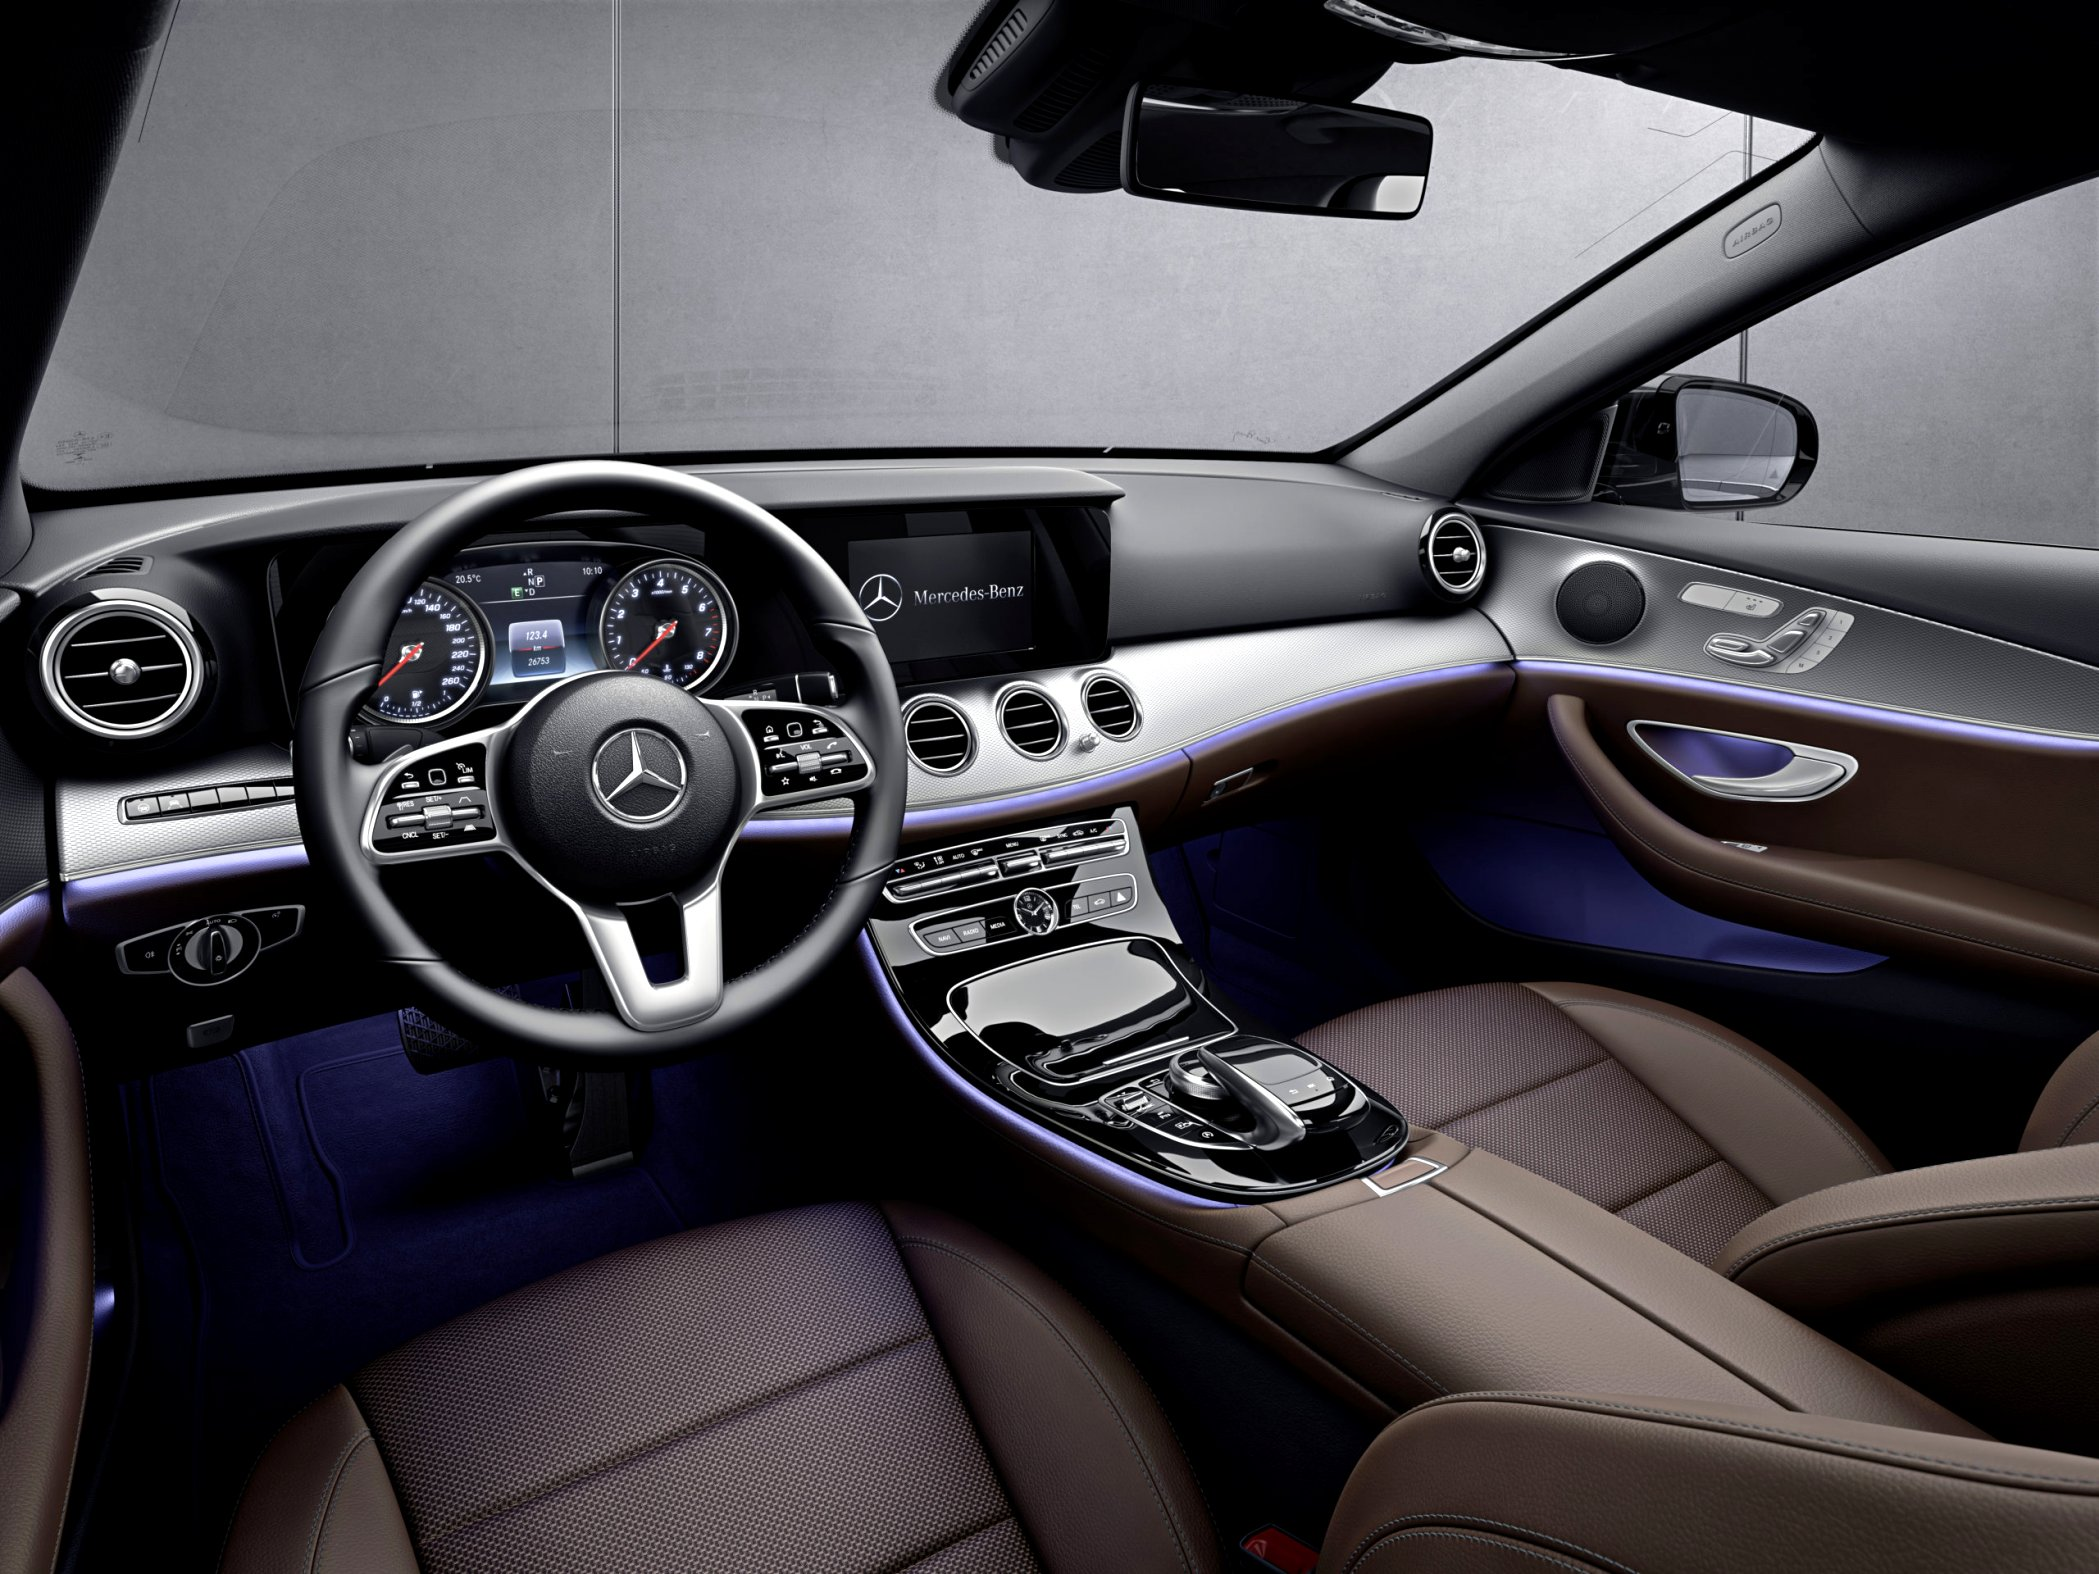 2020 mercedes a class interior Spesification